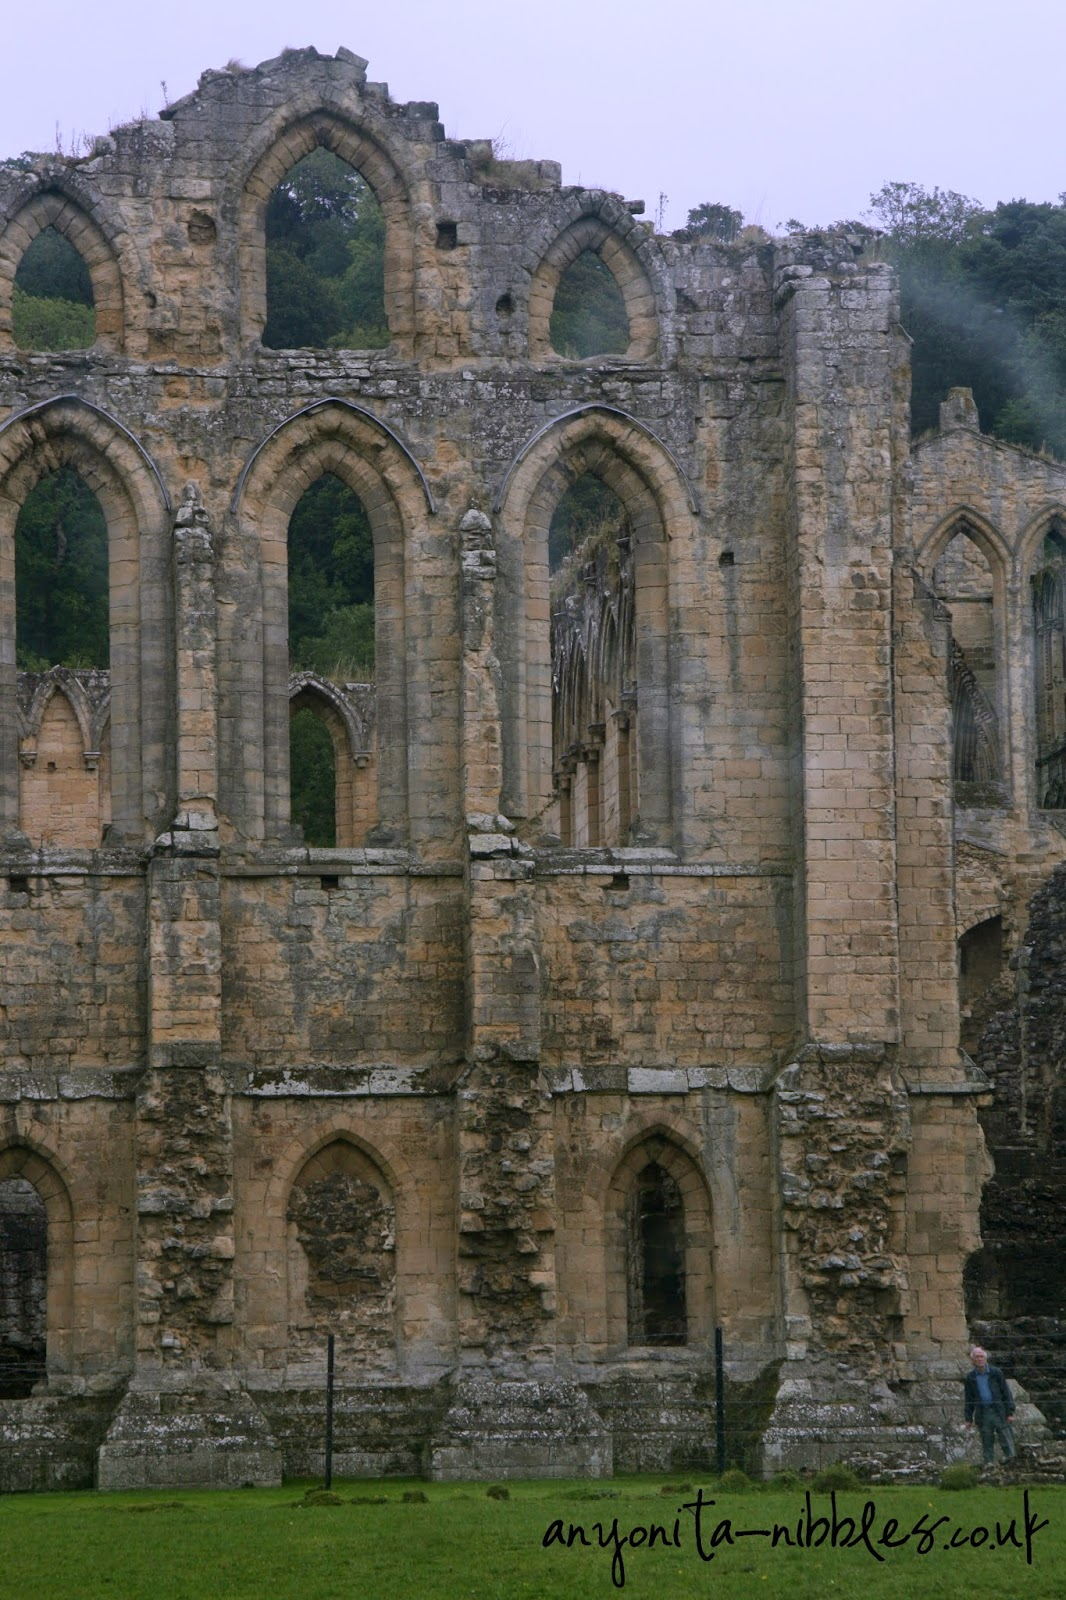 Rievaulx Abbey near Scarborough | Anyonita-nibbles.co.uk